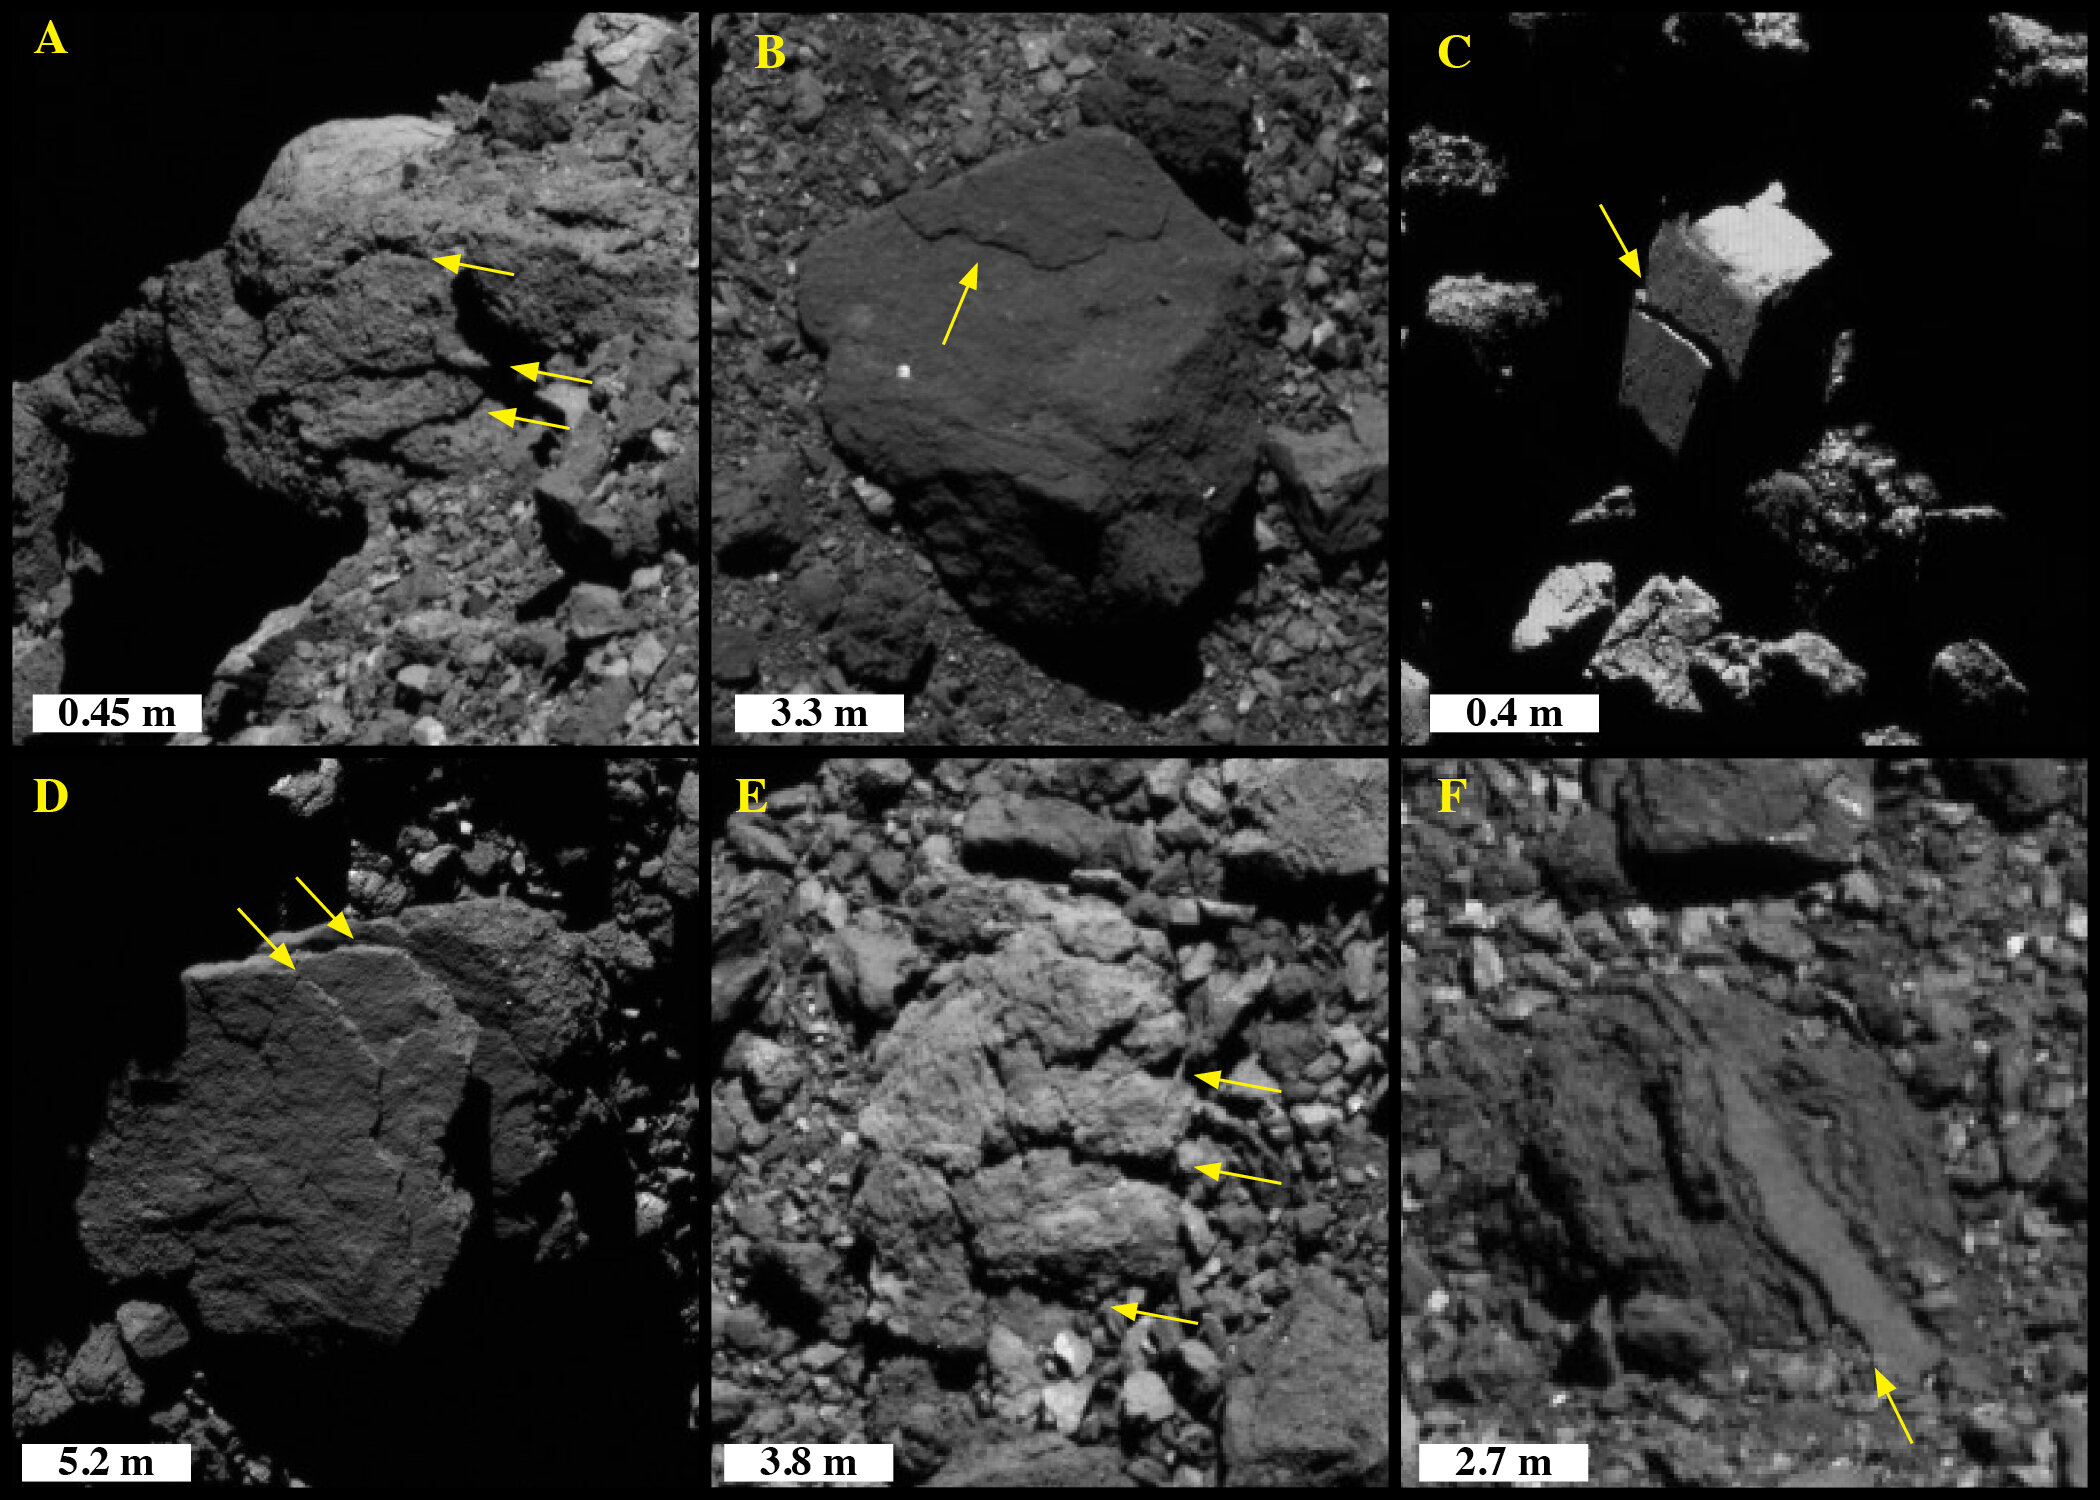 Studying craters on asteroid Bennu shows how long it has been orbiting near Earth